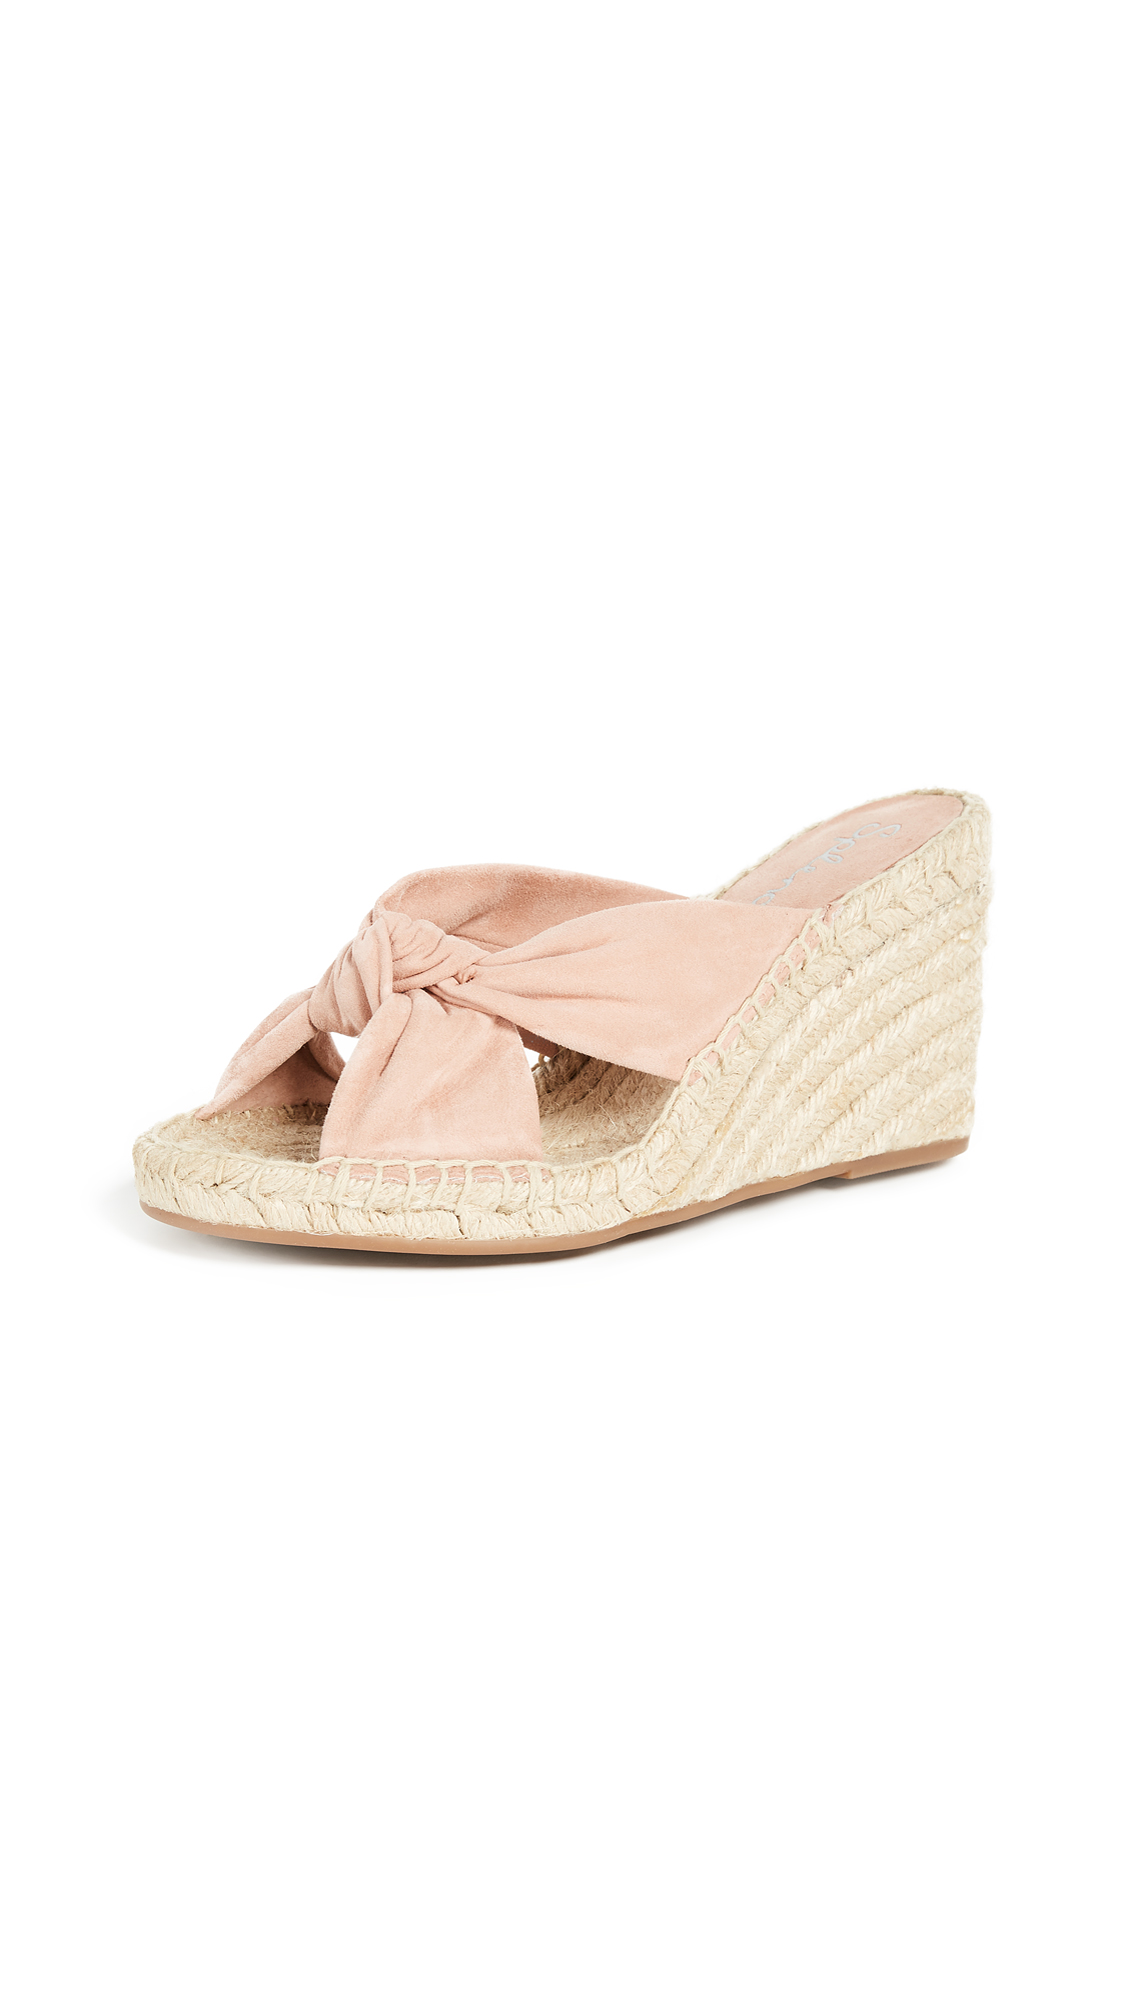 Splendid Bautista Wedges - Dark Blush